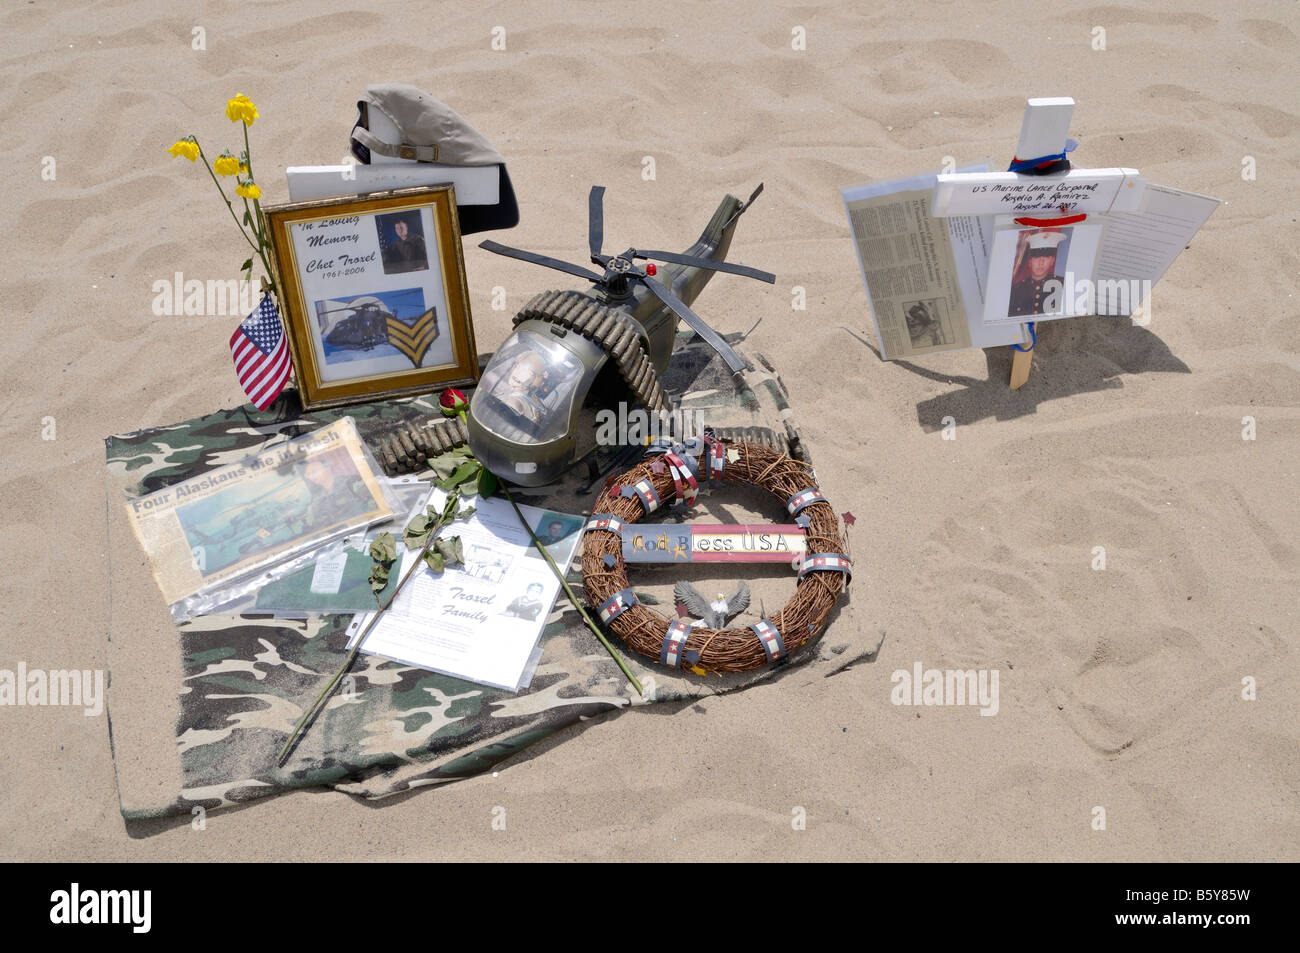 Personalized temporary memorial for fallen soldier in Iraq prepared at Arlington West on Santa Monica Beach - Stock Image